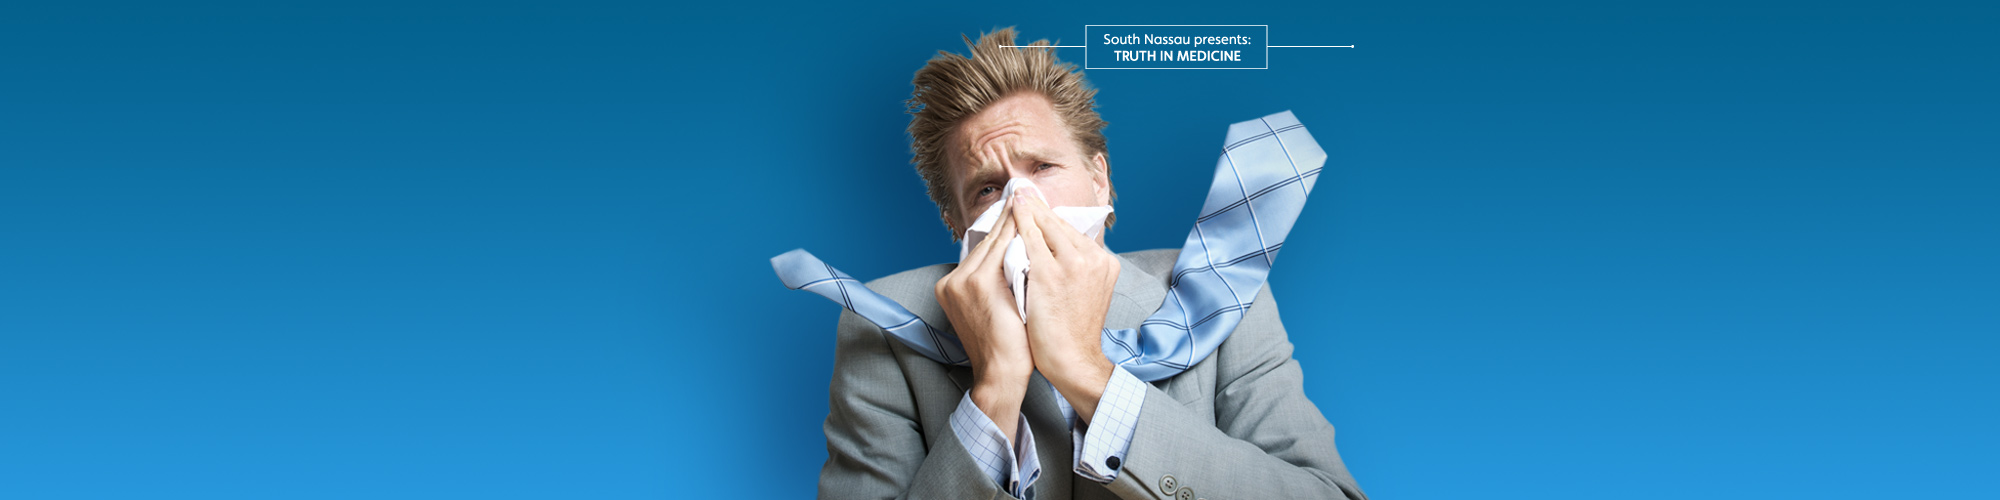 Does your heart stop when you sneeze? Our experts have the answers. LEARN MORE>